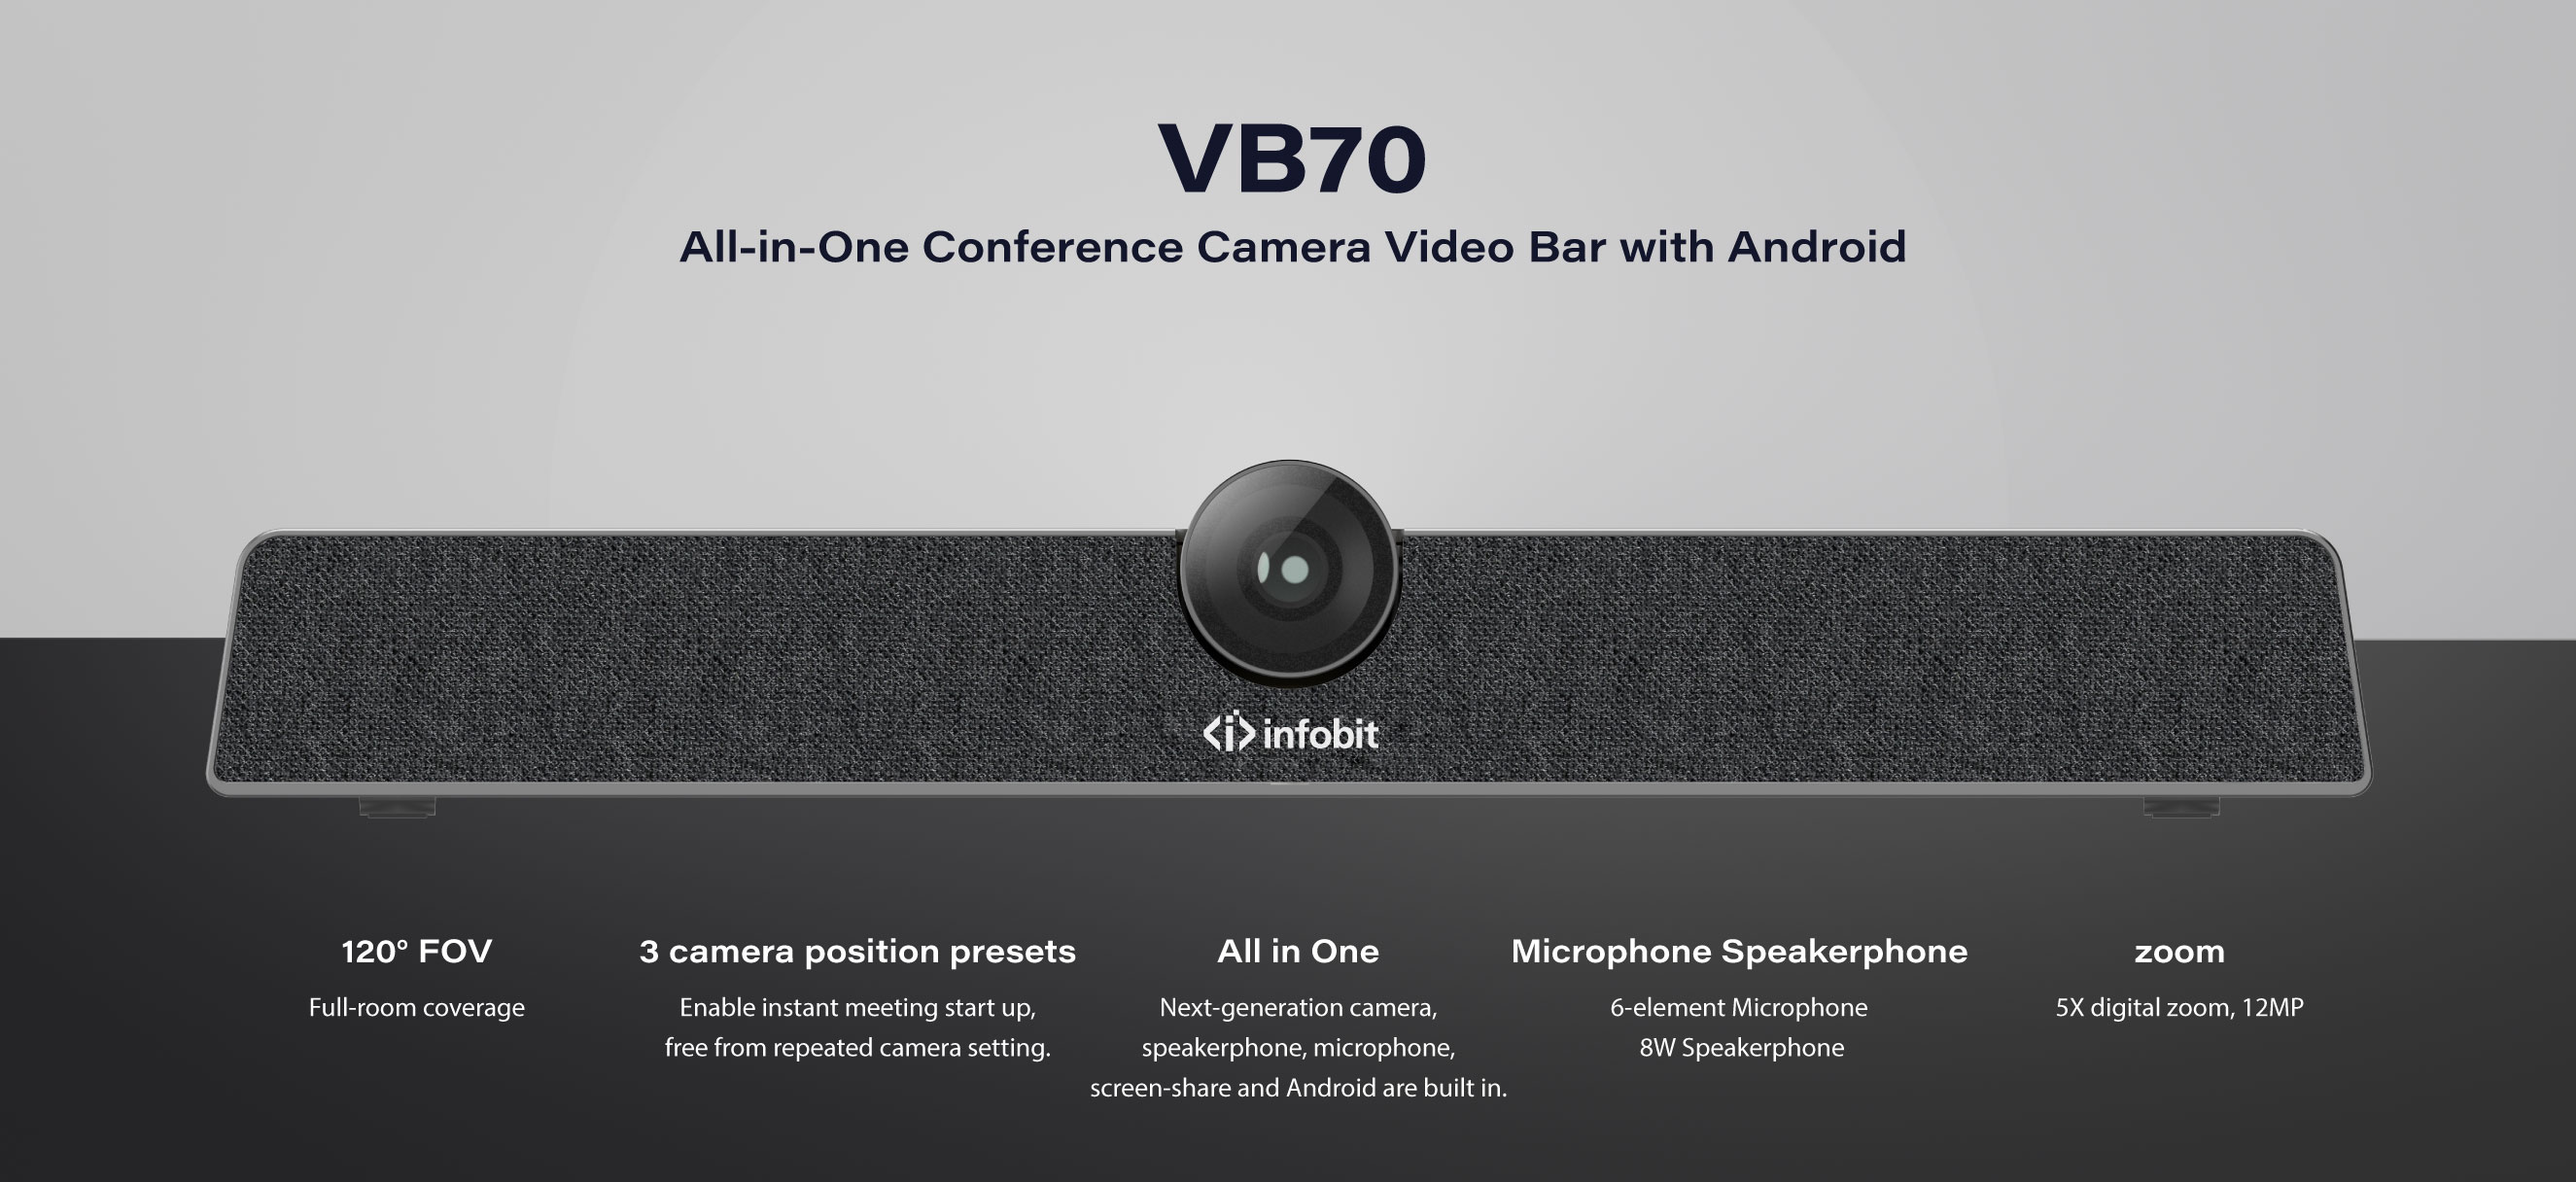 iCam VB70: All-in-One Conference Camera Video Bar with Android